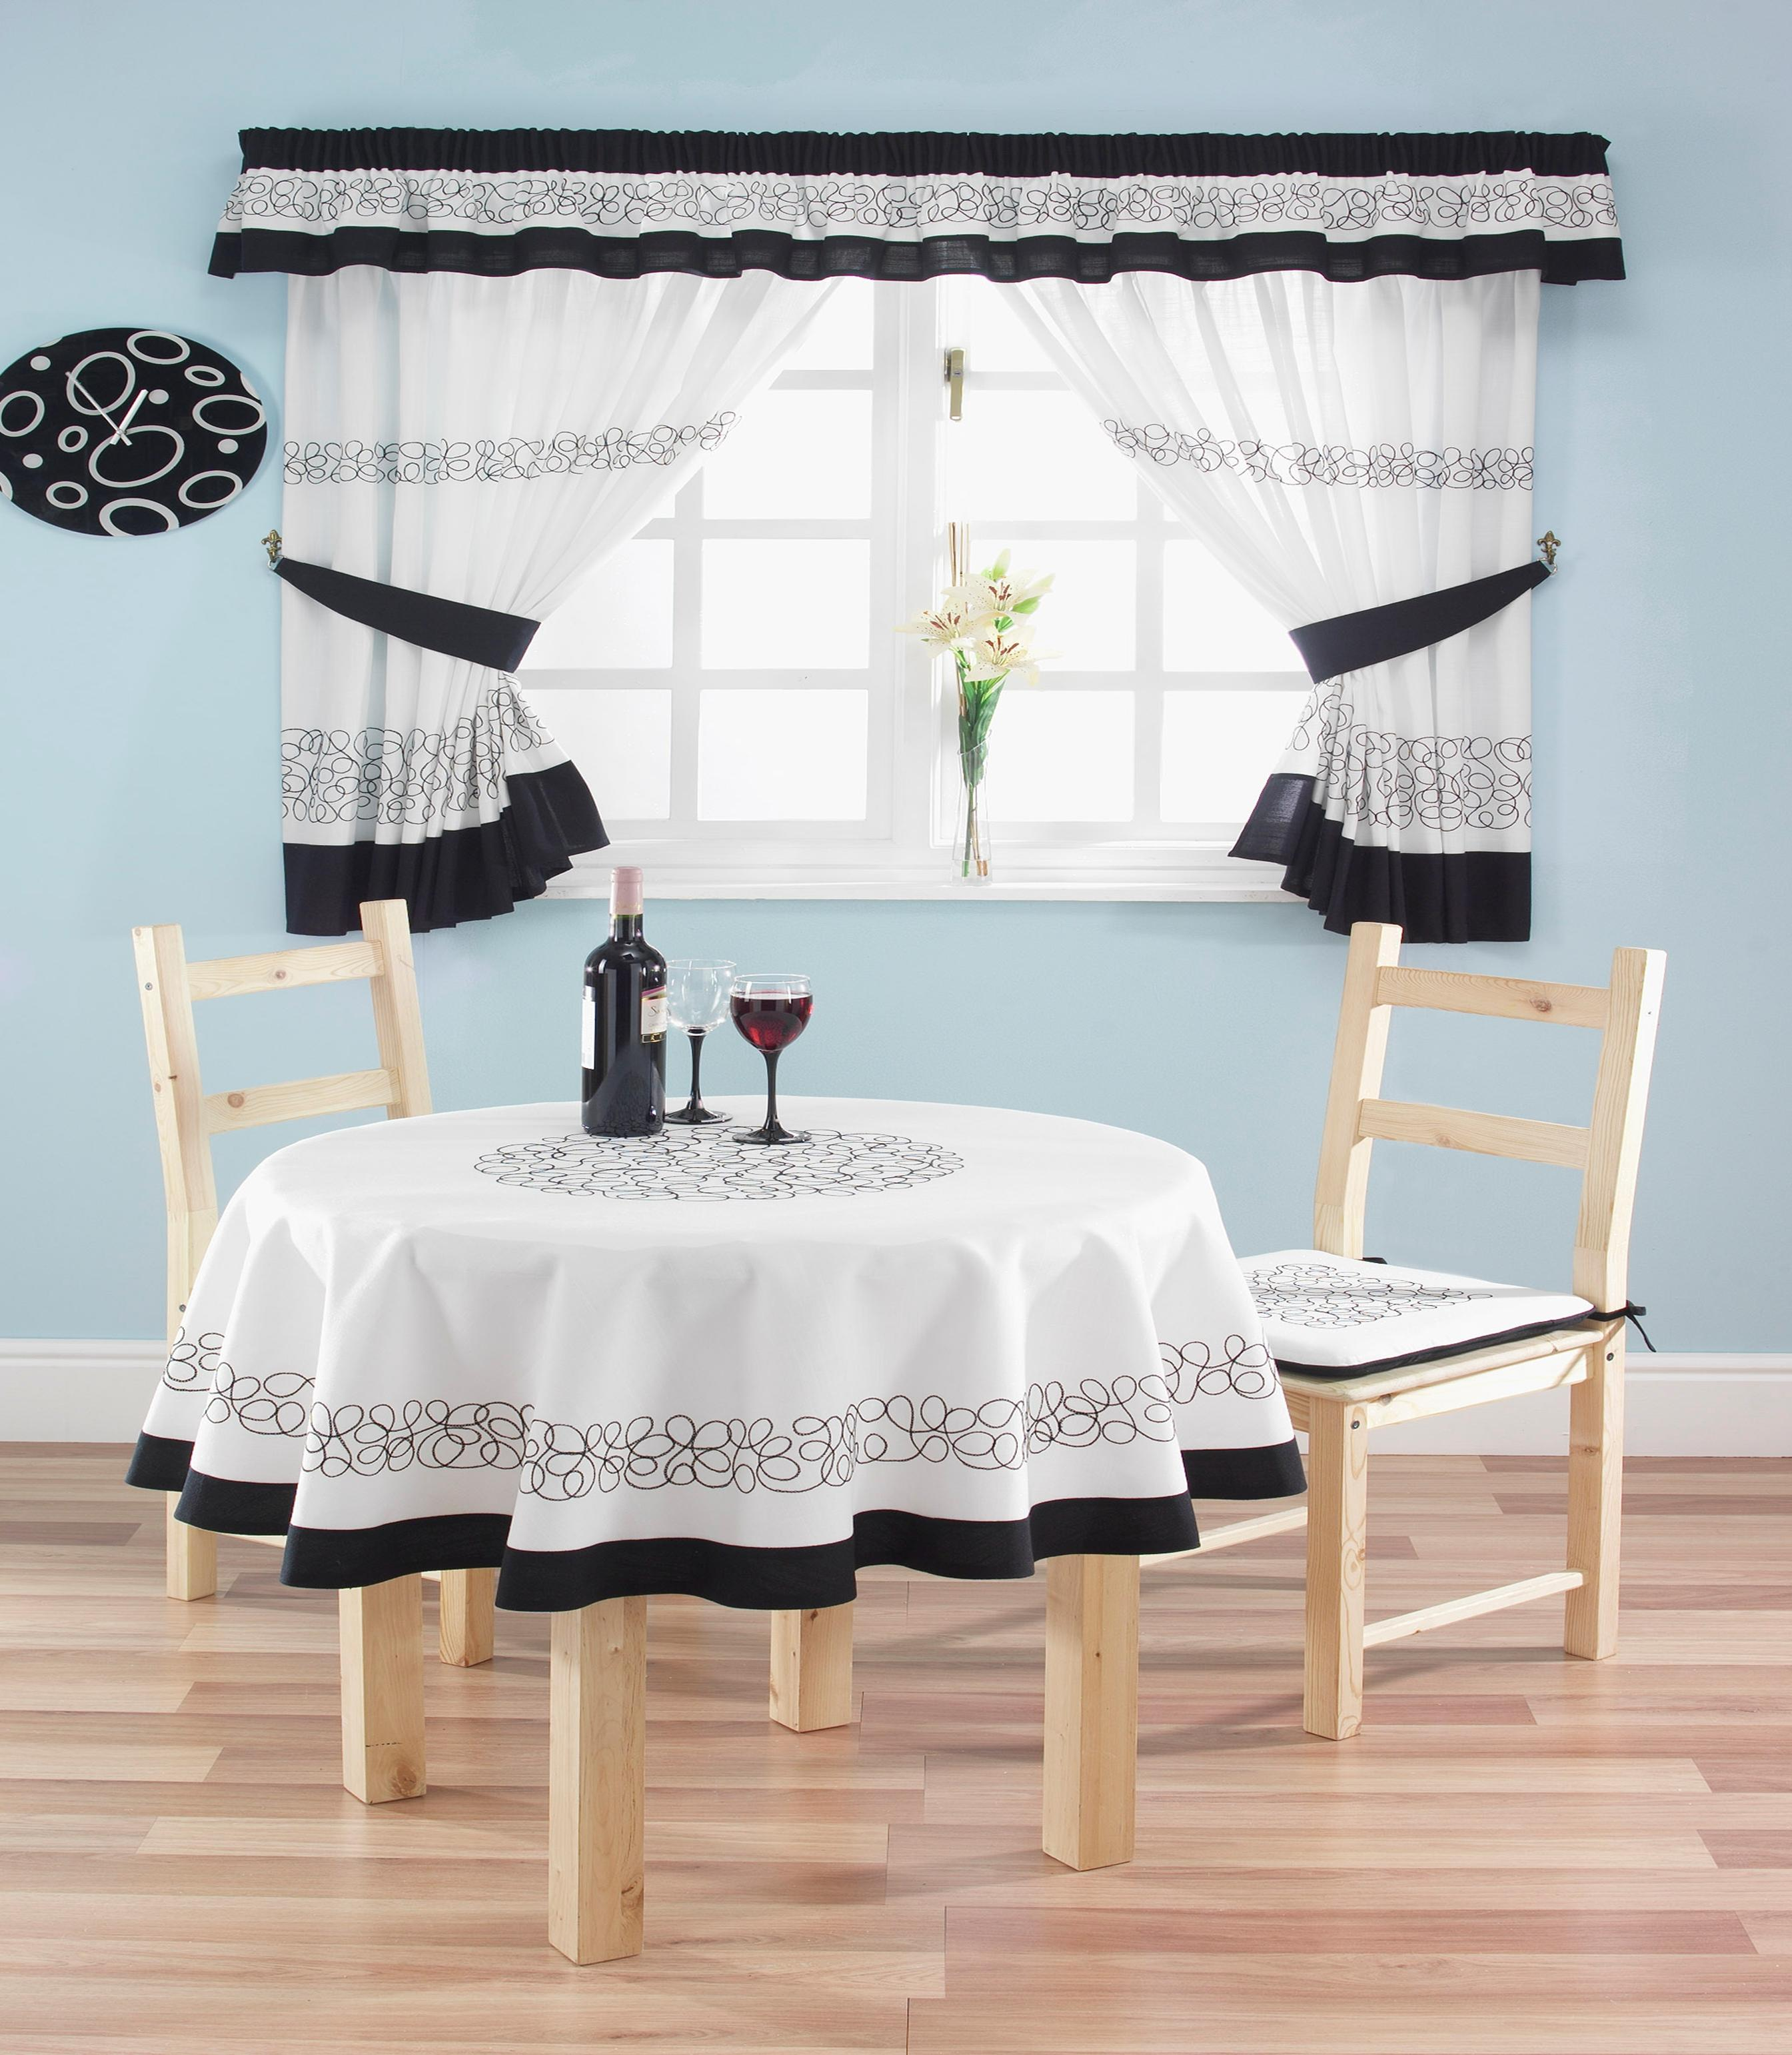 Modern Country Kitchen Curtains With Tie Backs 66x54